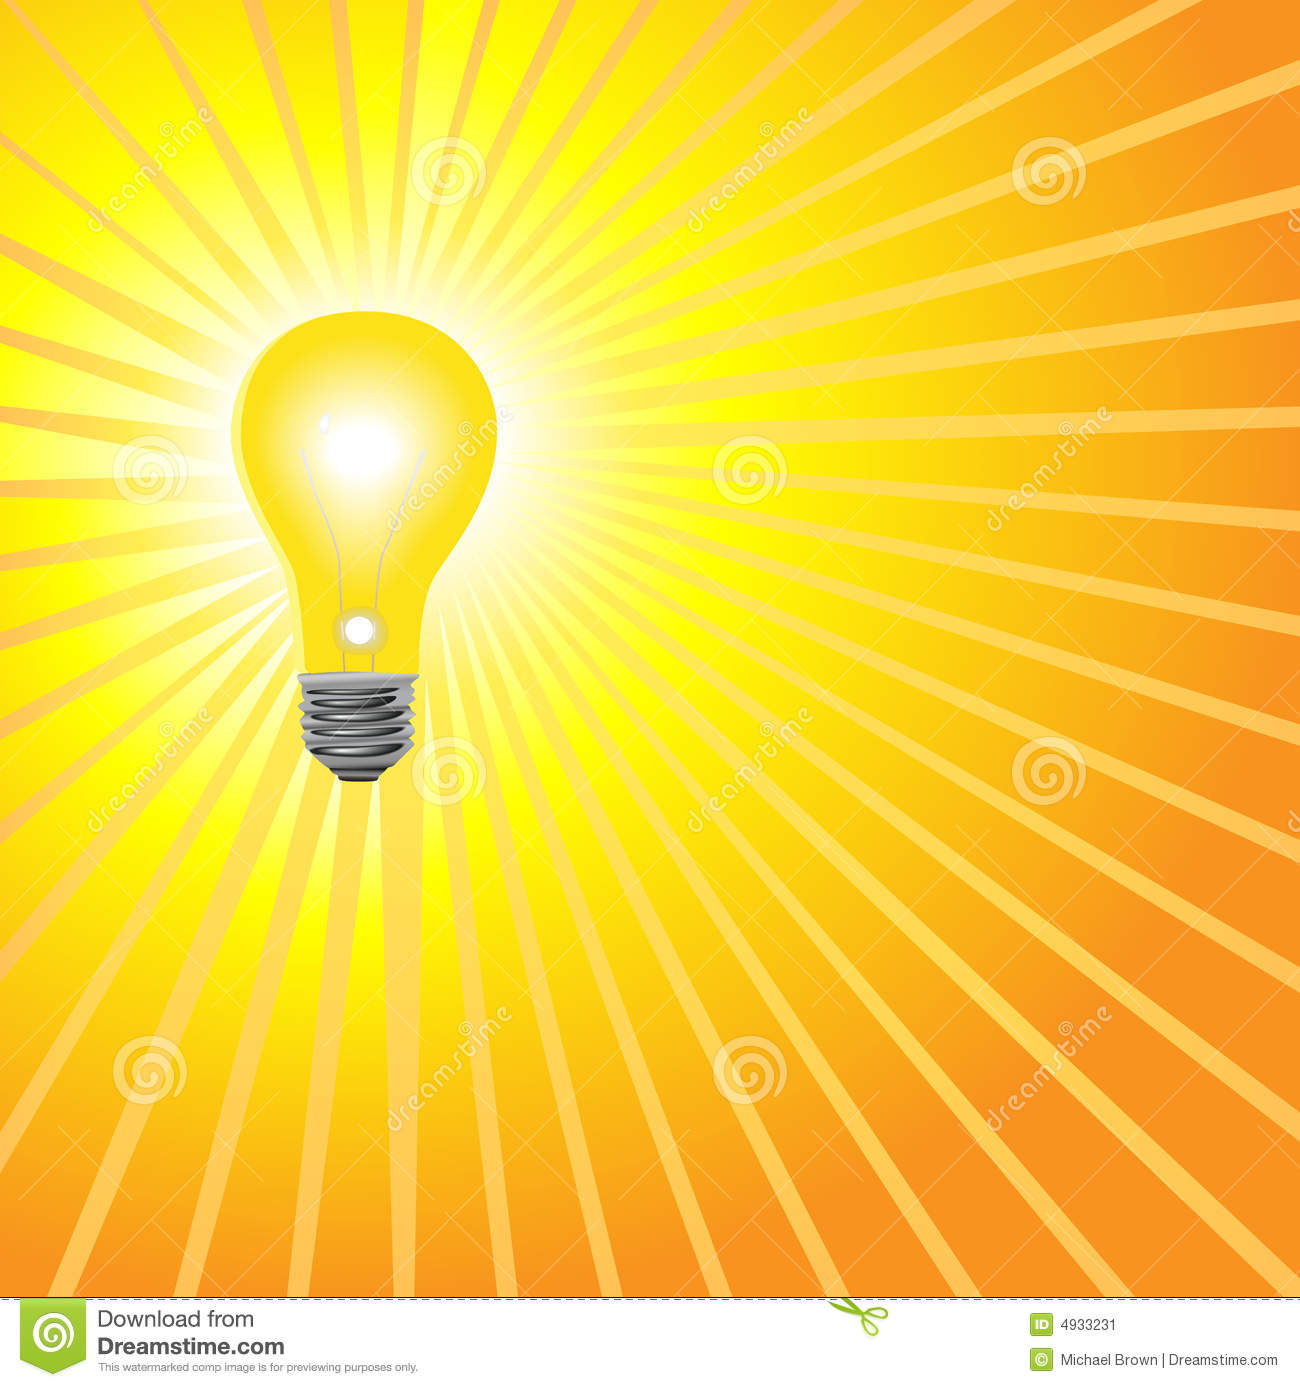 yellow led clipart - photo #42